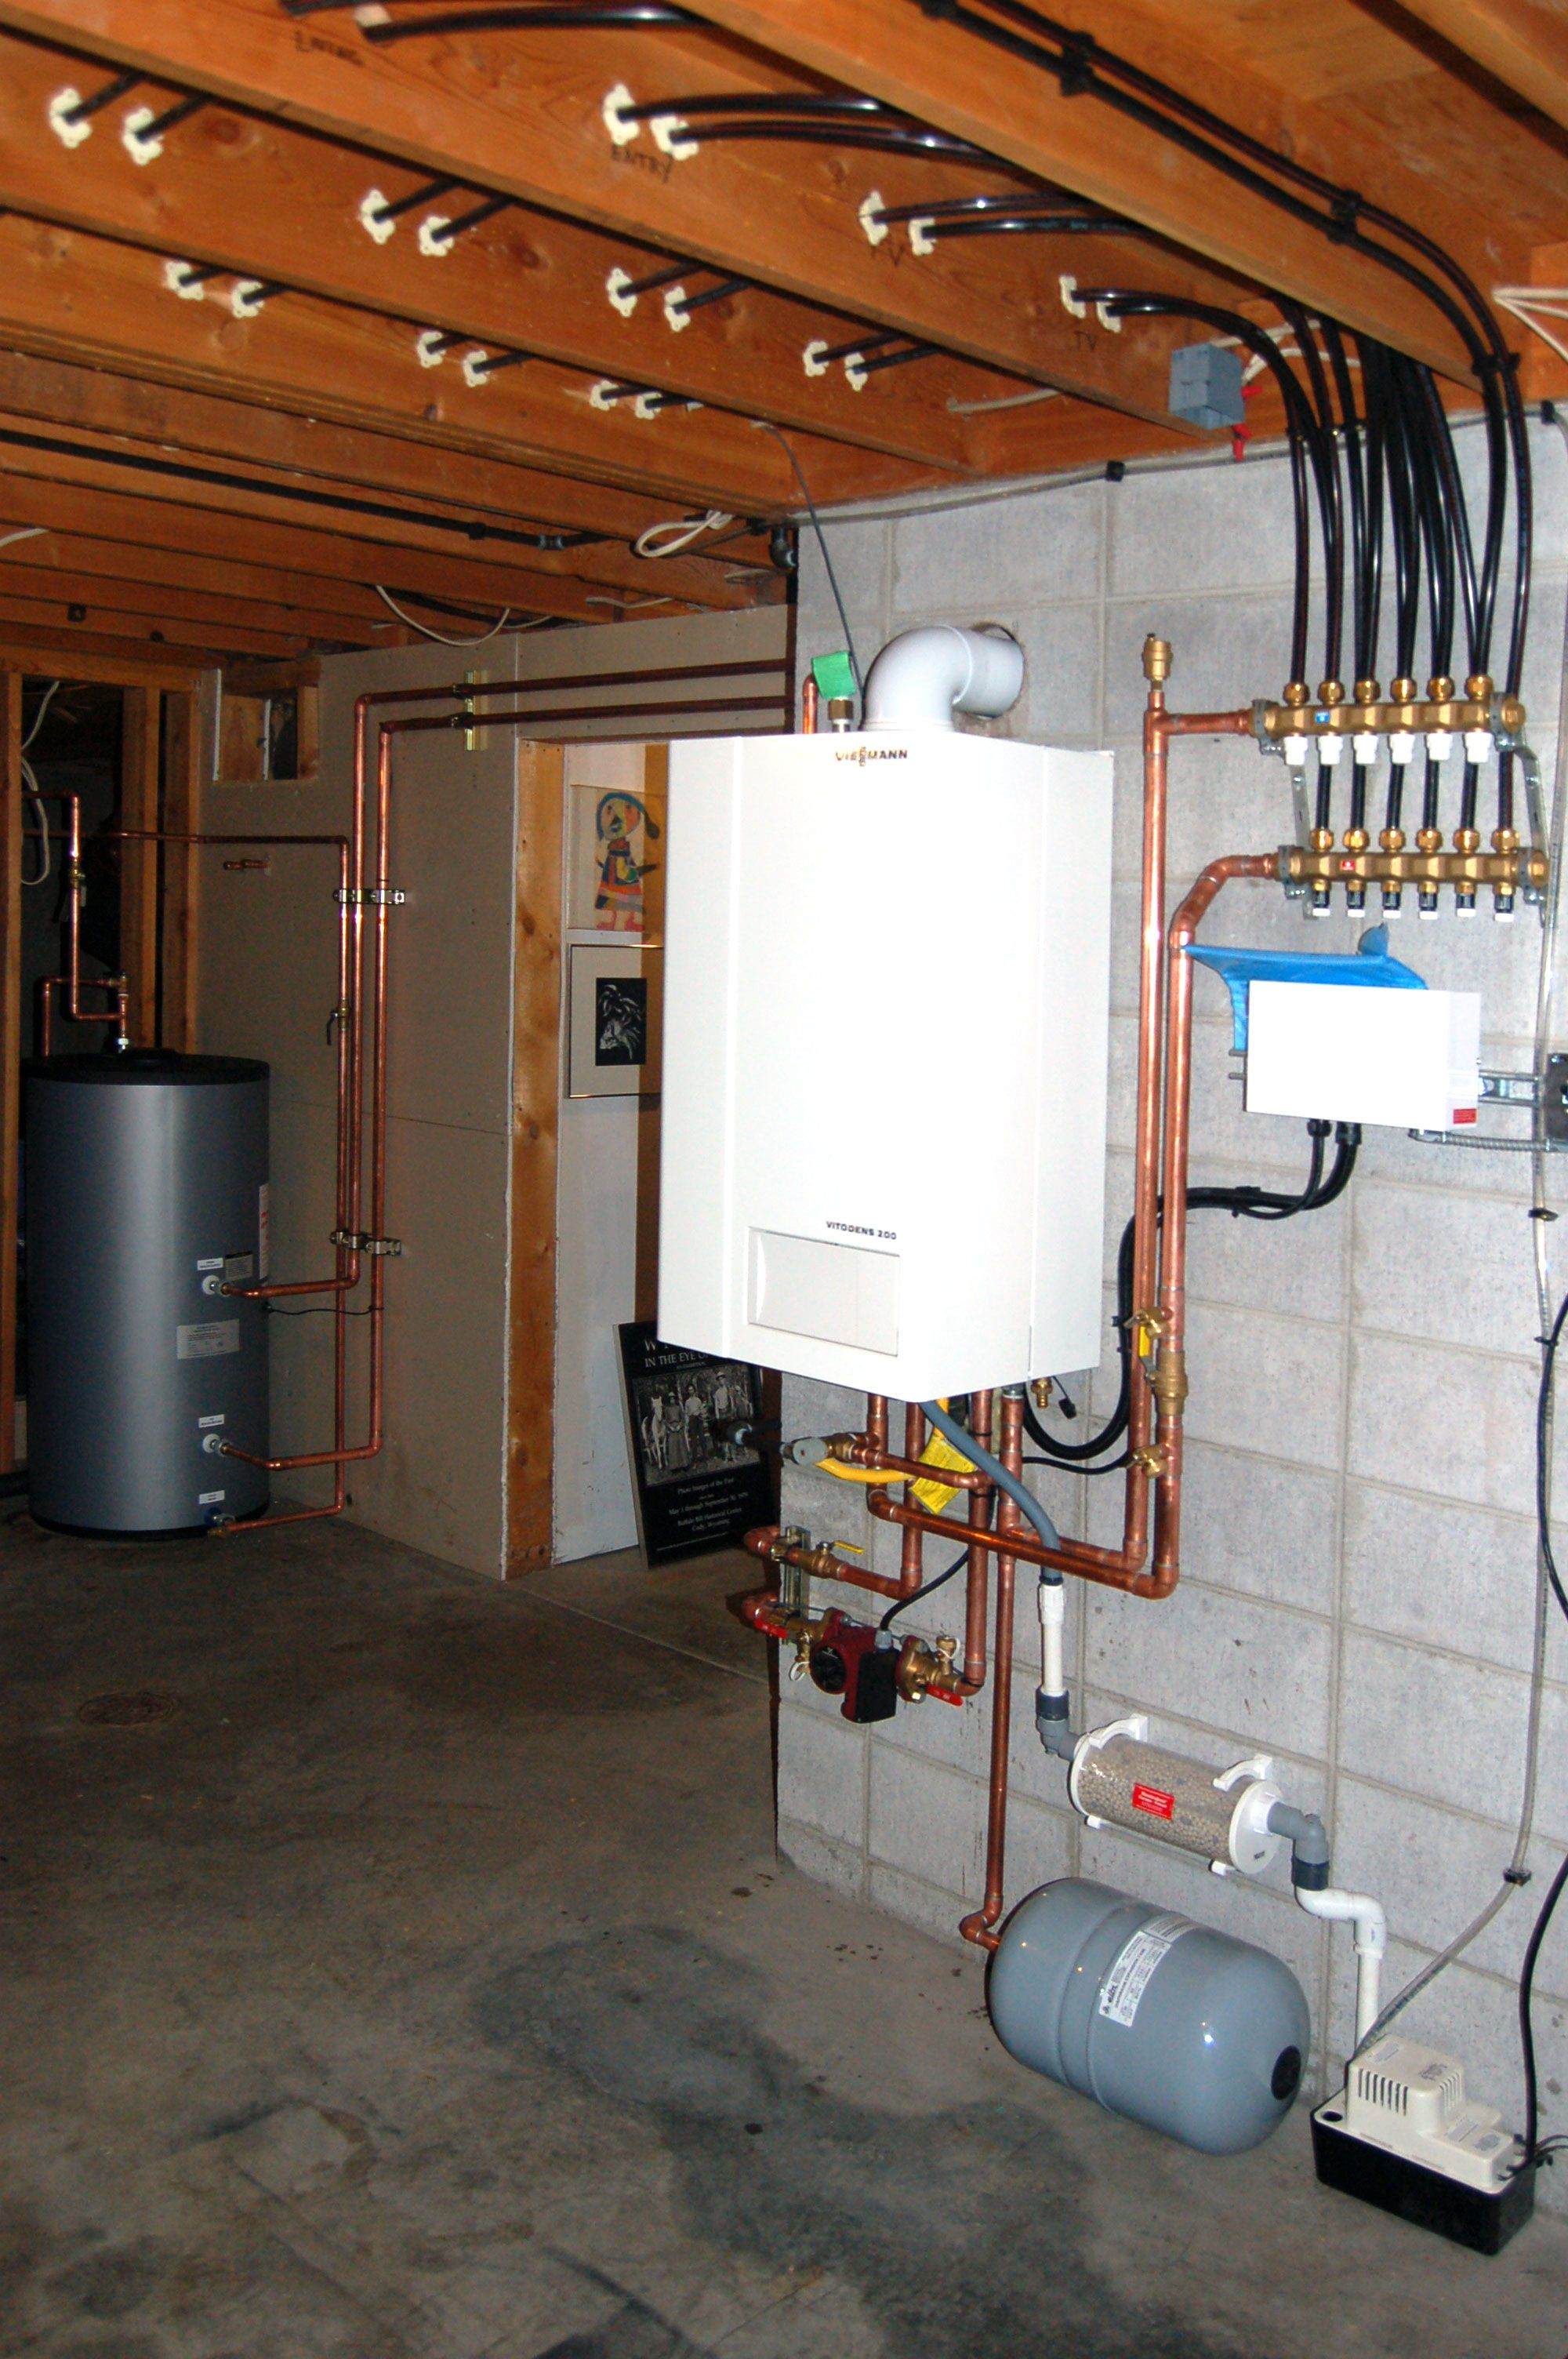 This Home Owner Upgraded To A Viessmann He Chose Panel